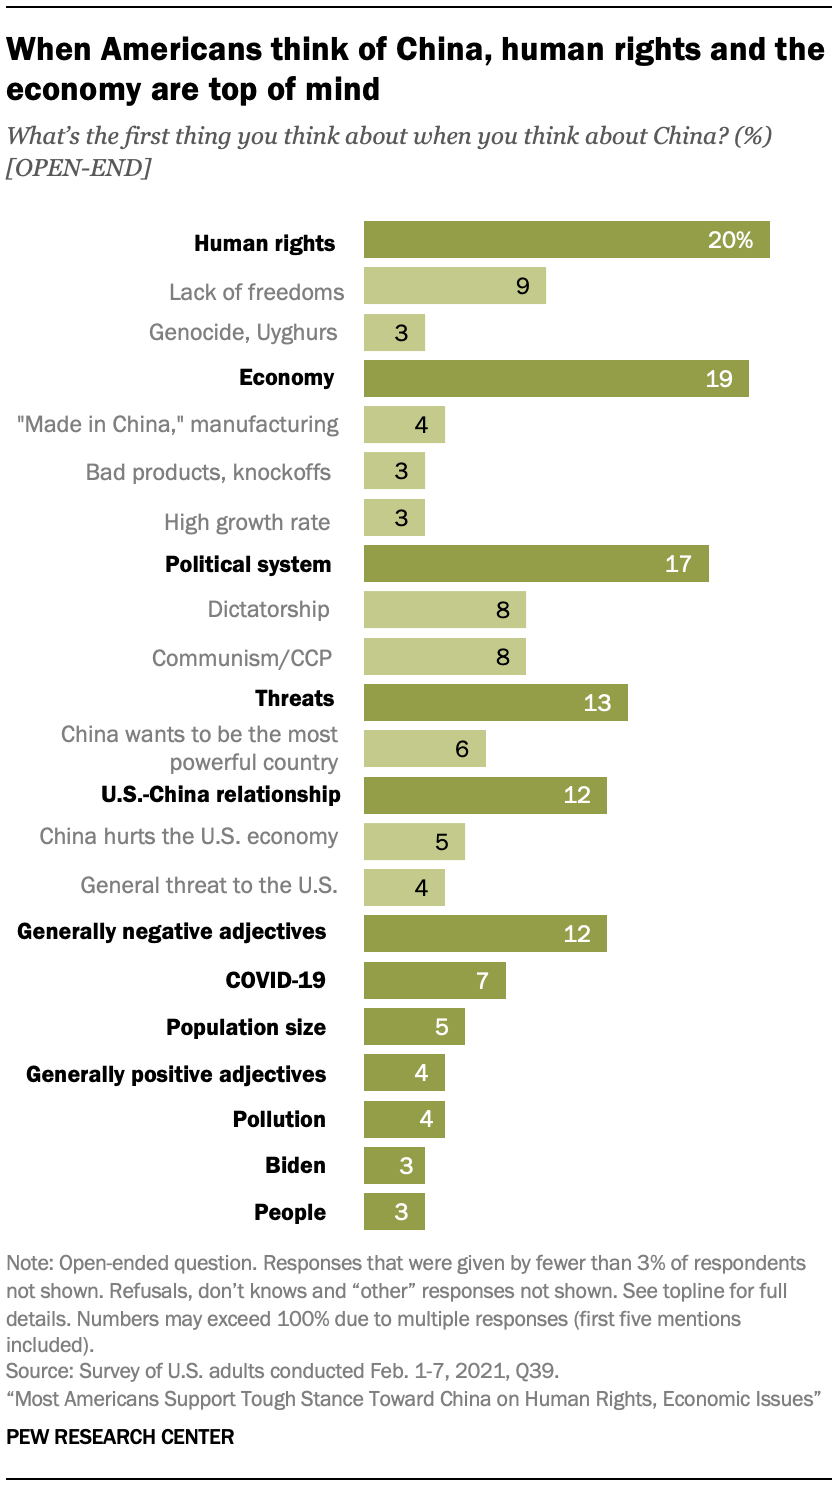 When Americans think of China, human rights and the economy are top of mind